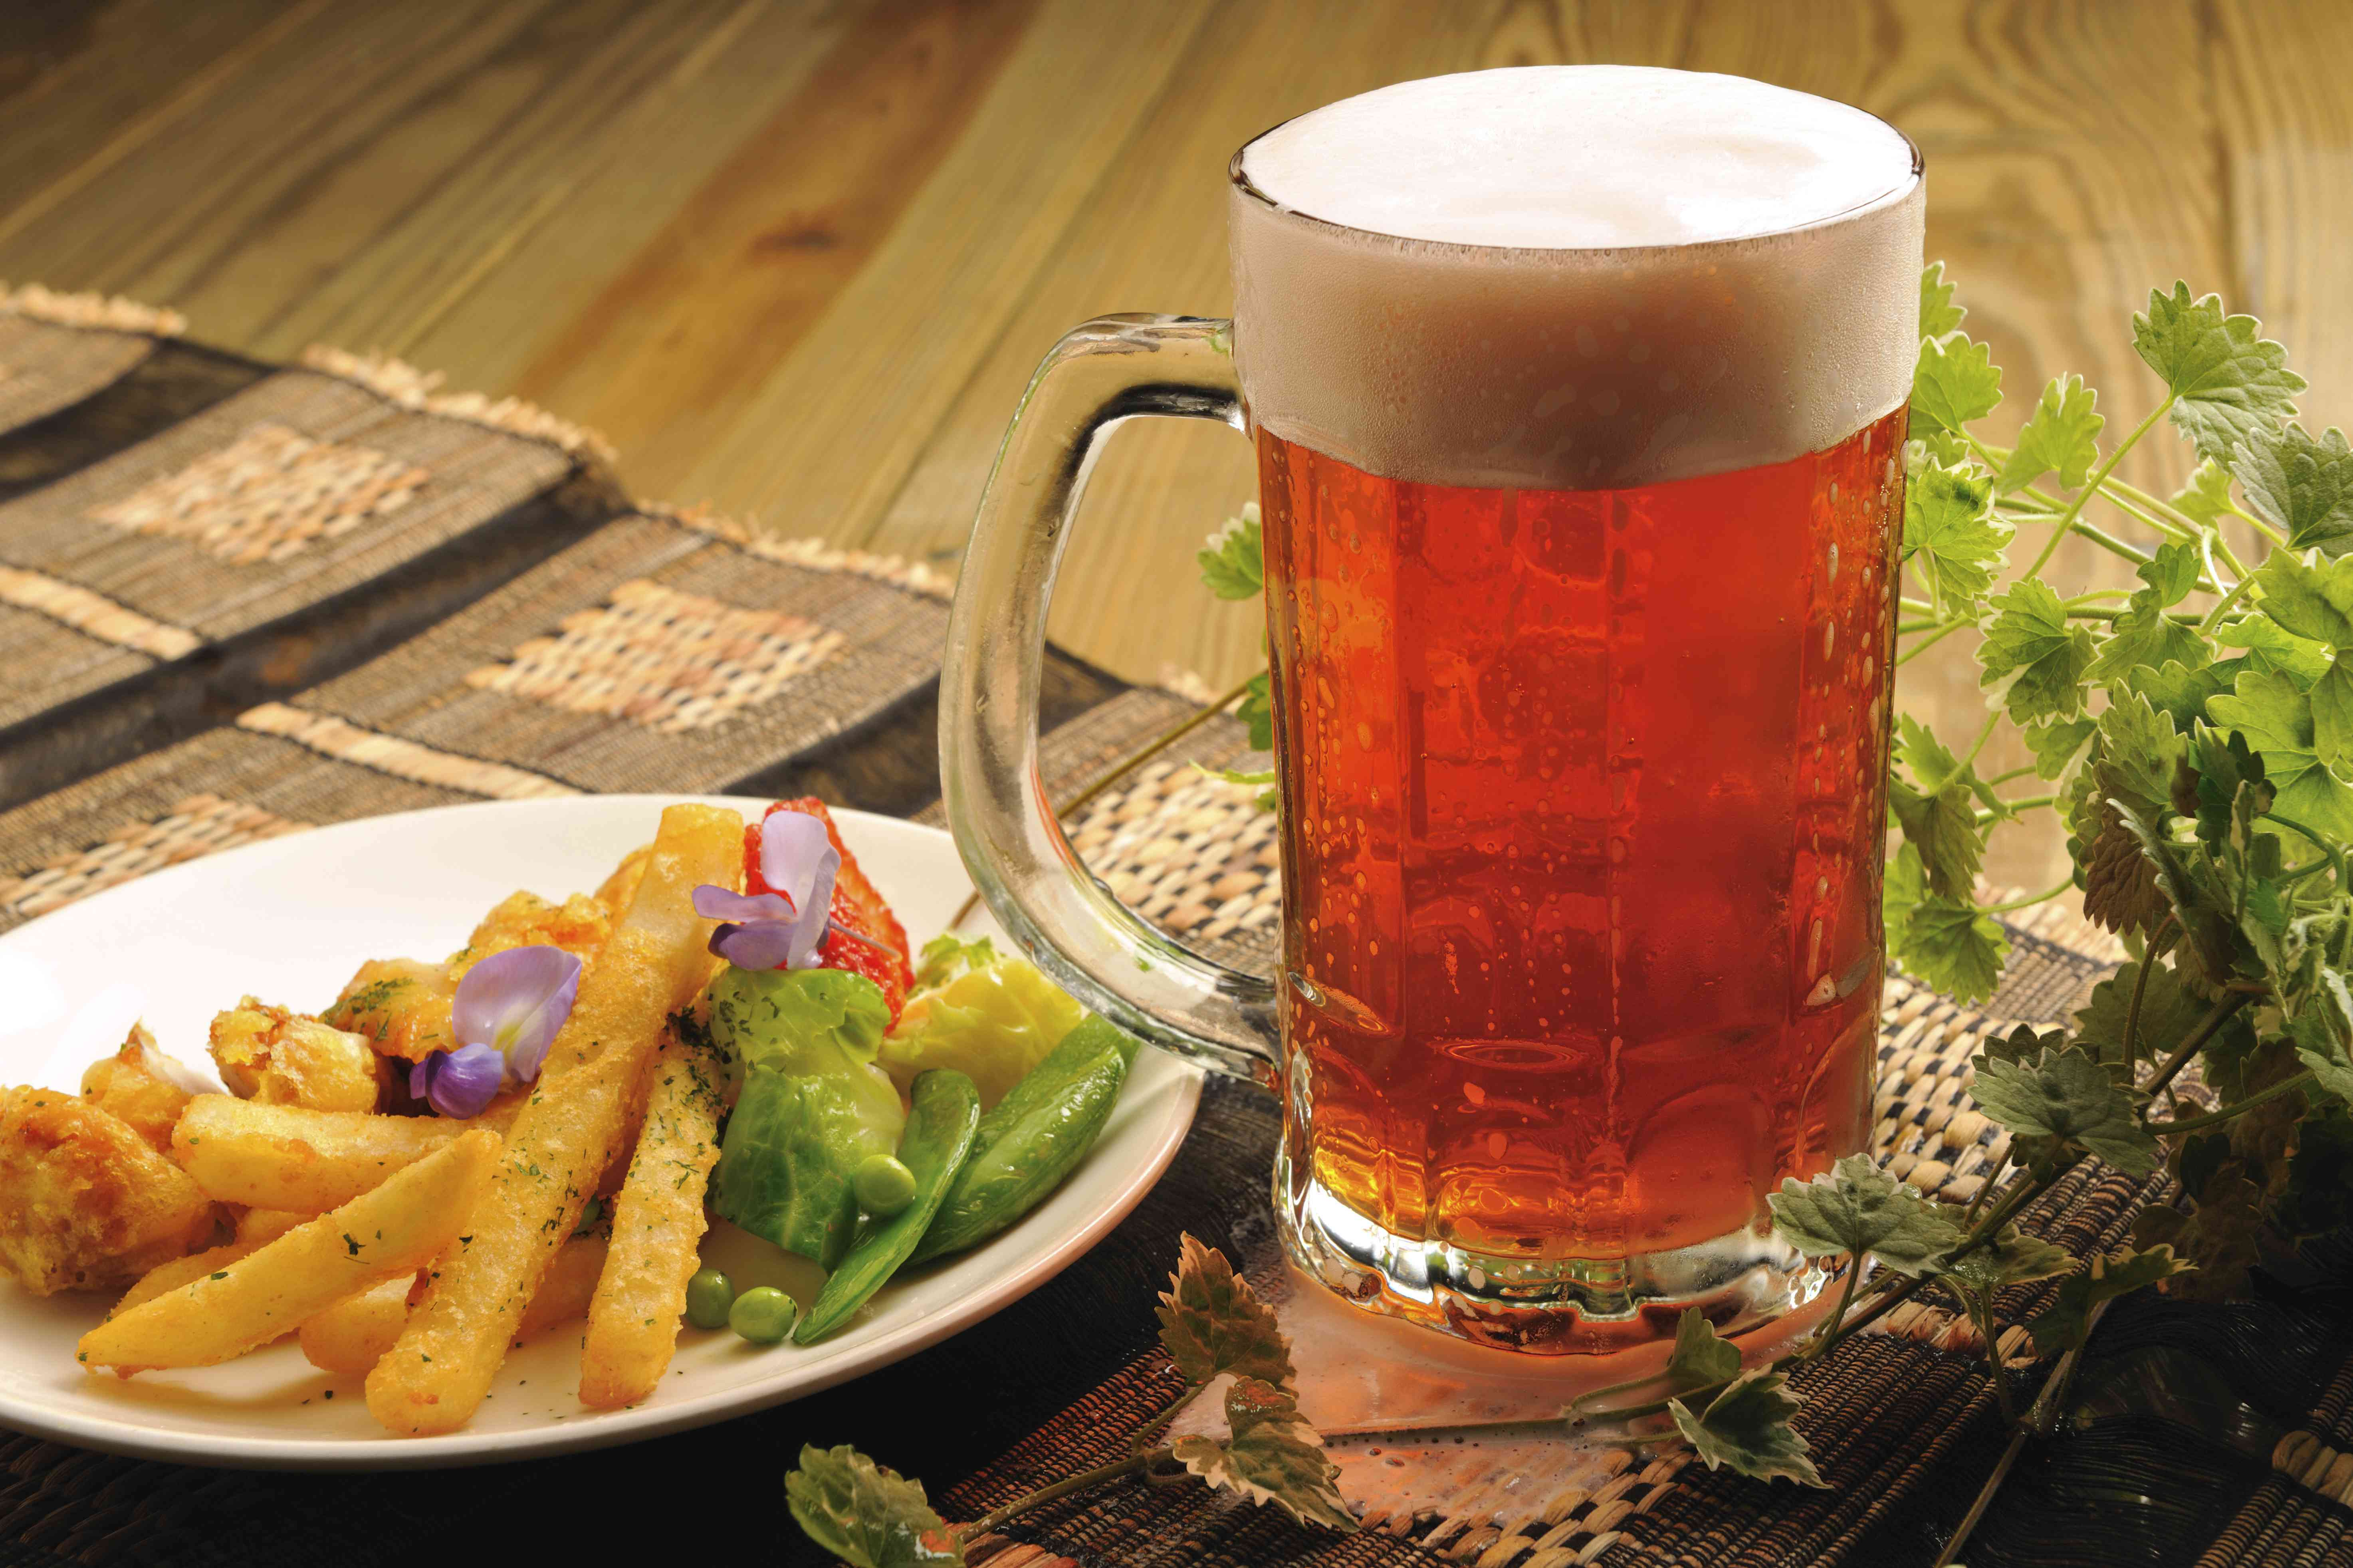 Food portrait of strawberry beer and a plate of French fries